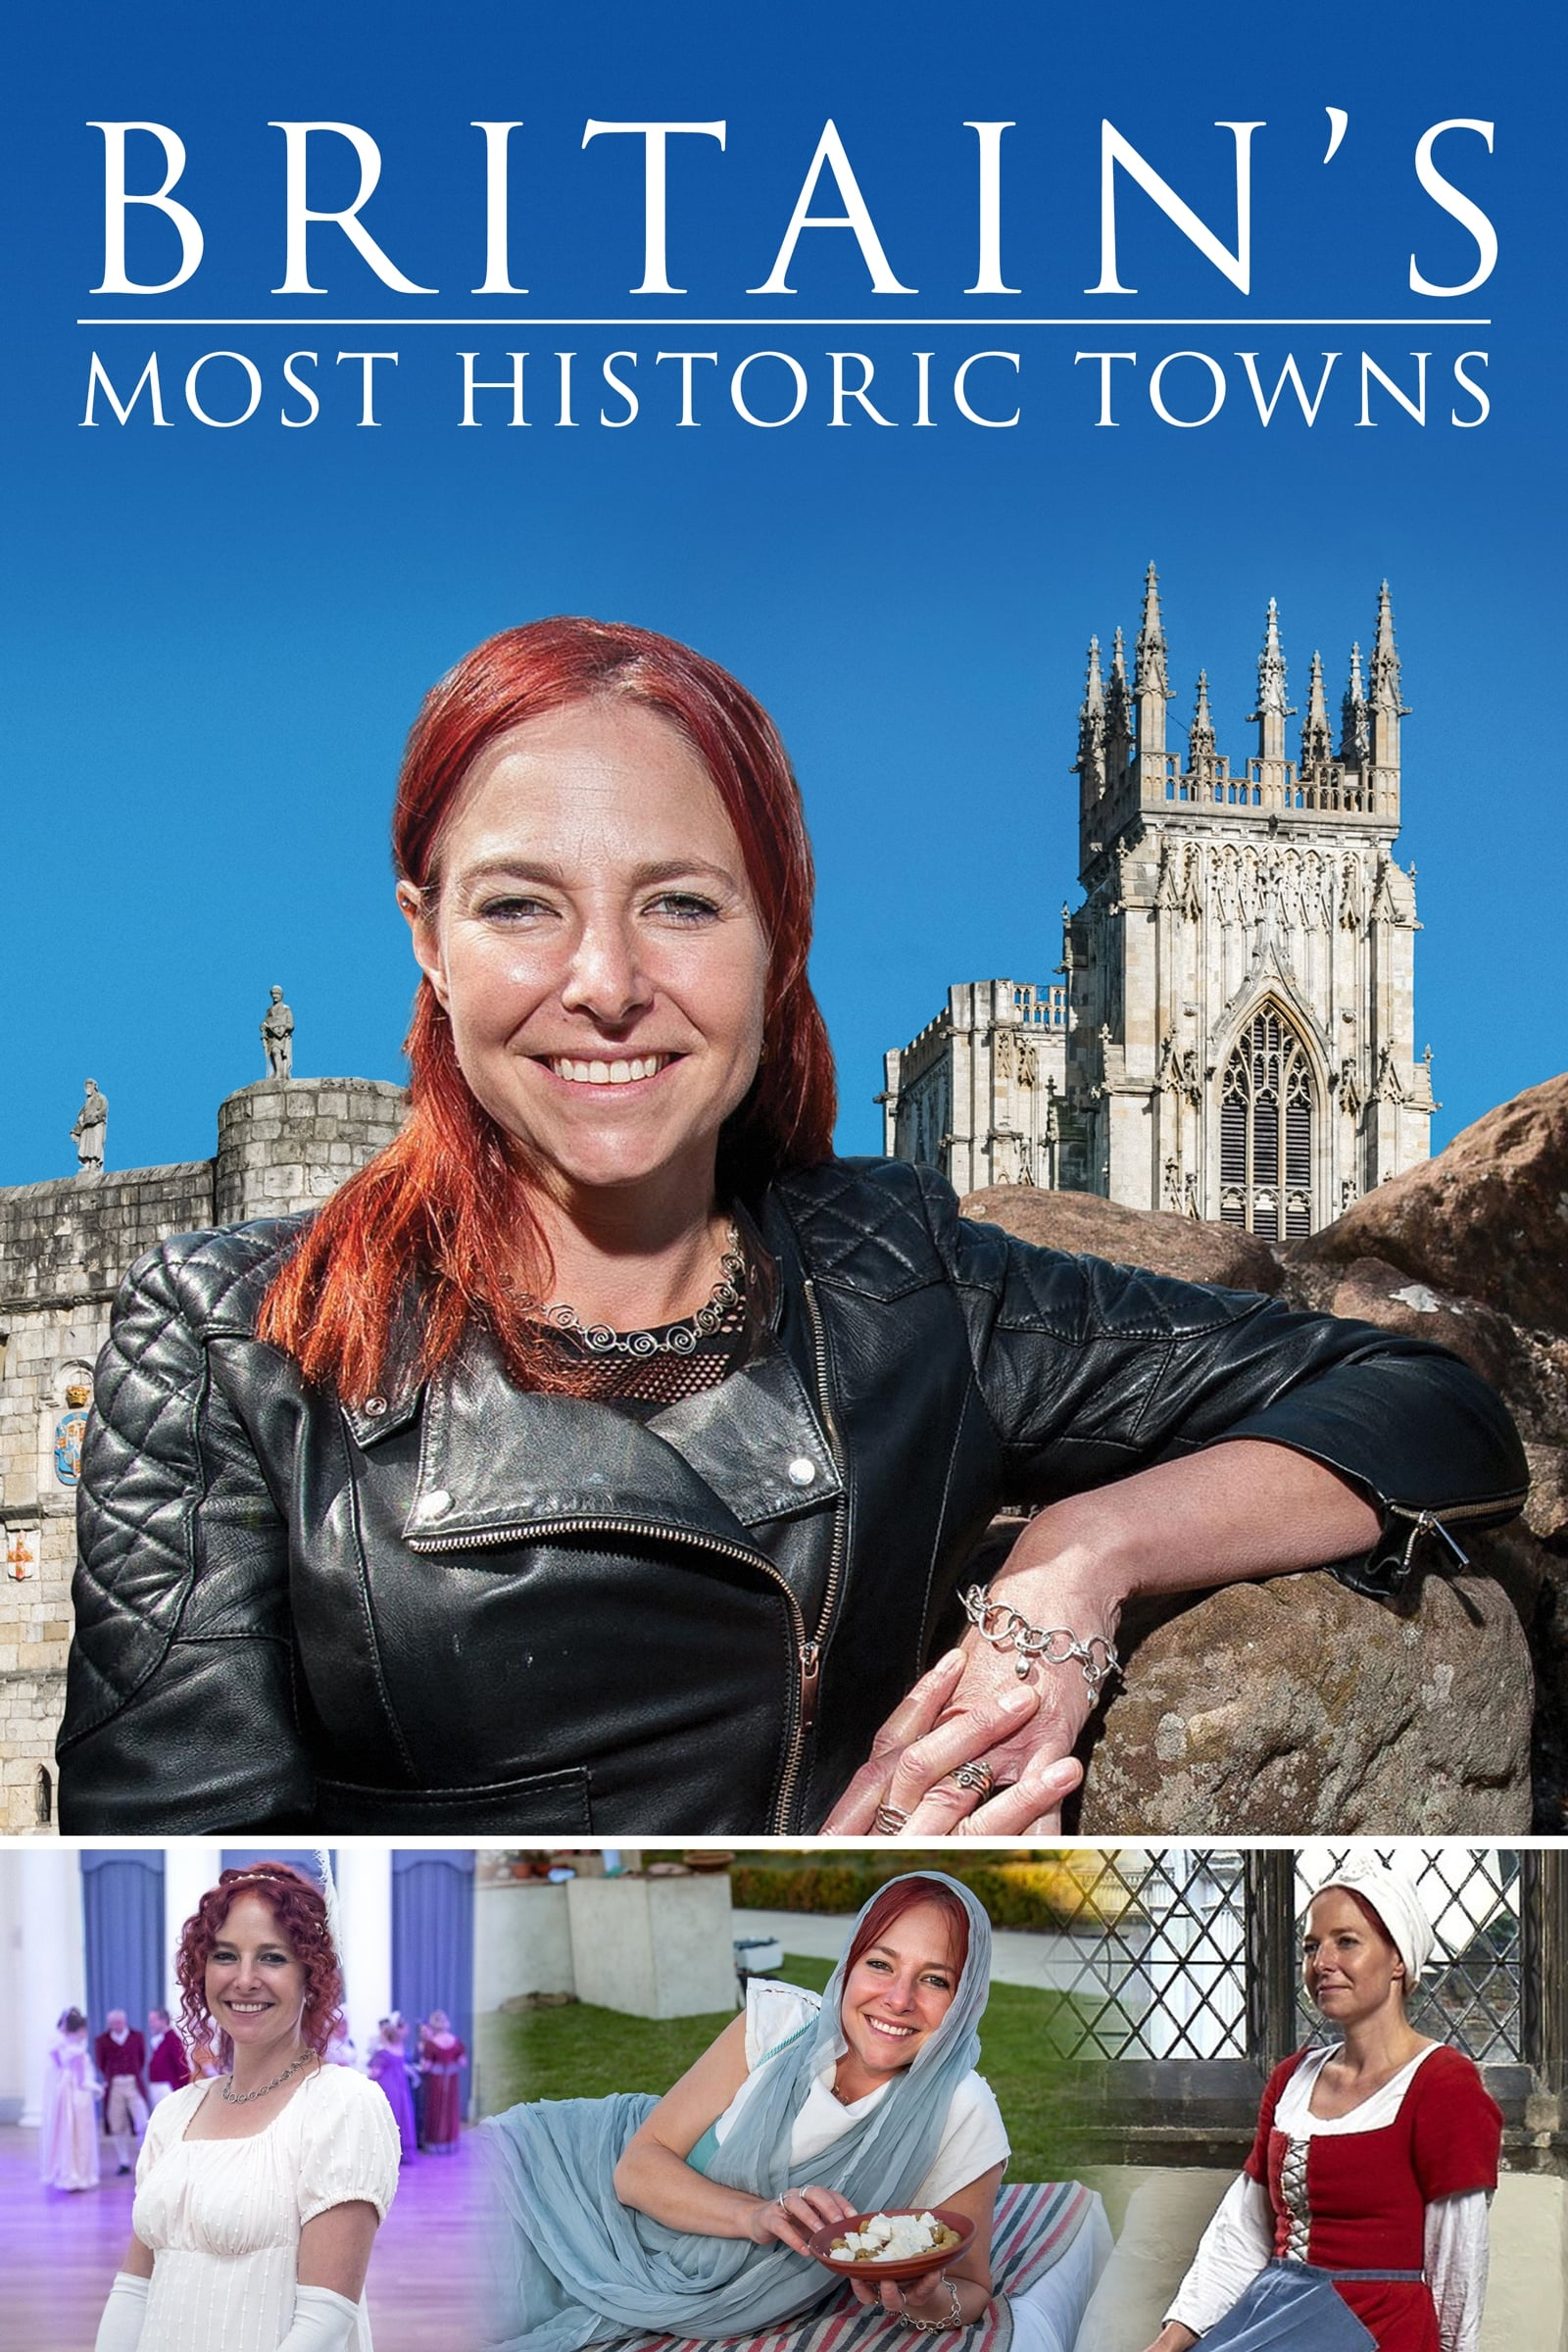 Britain's Most Historic Towns